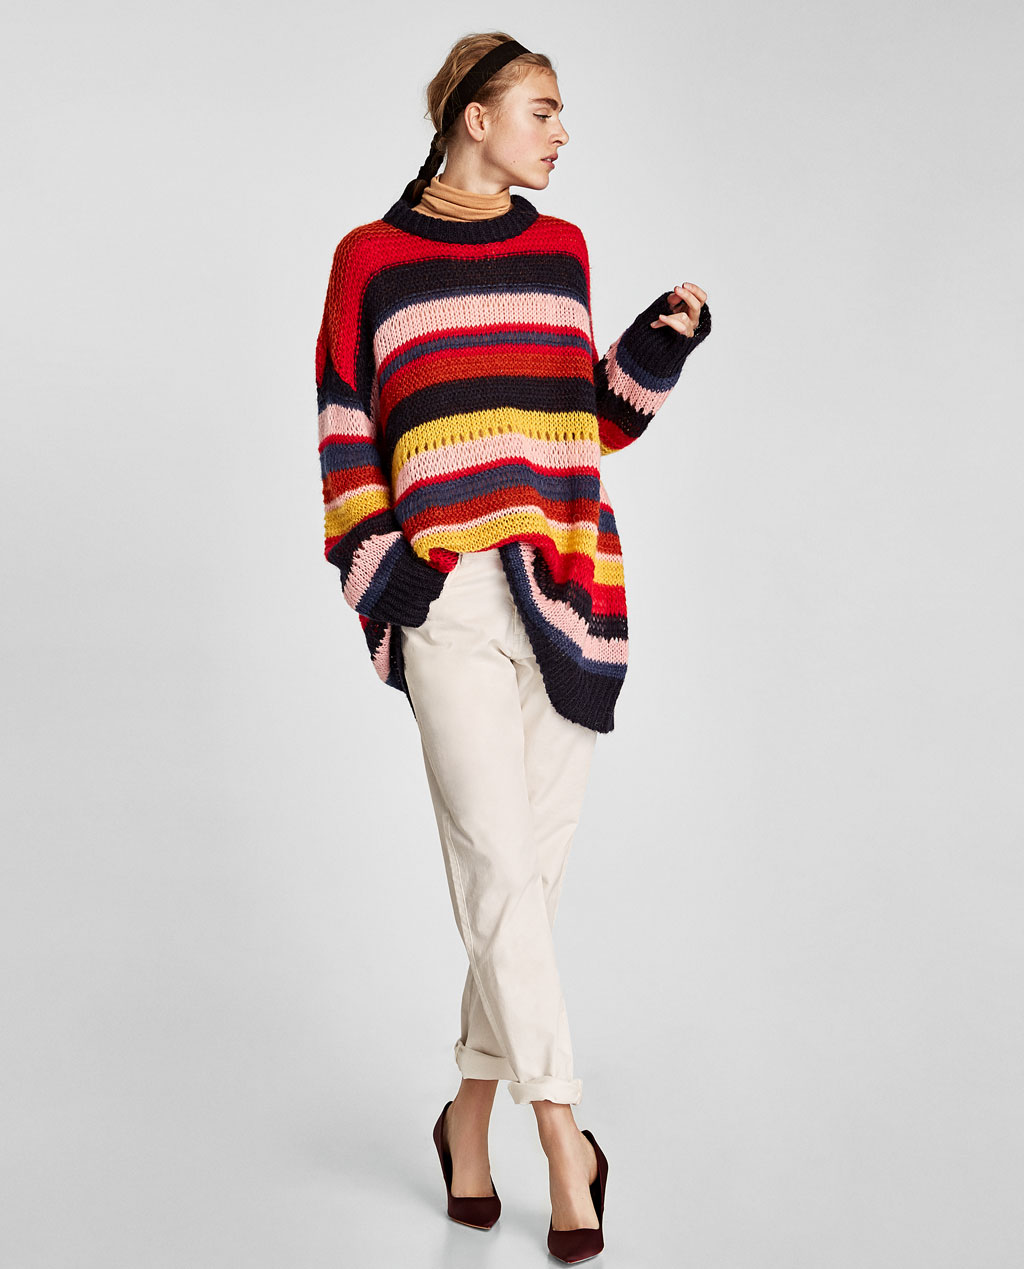 MULTICOLORED STRIPED SWEATER - 65.90 CAD